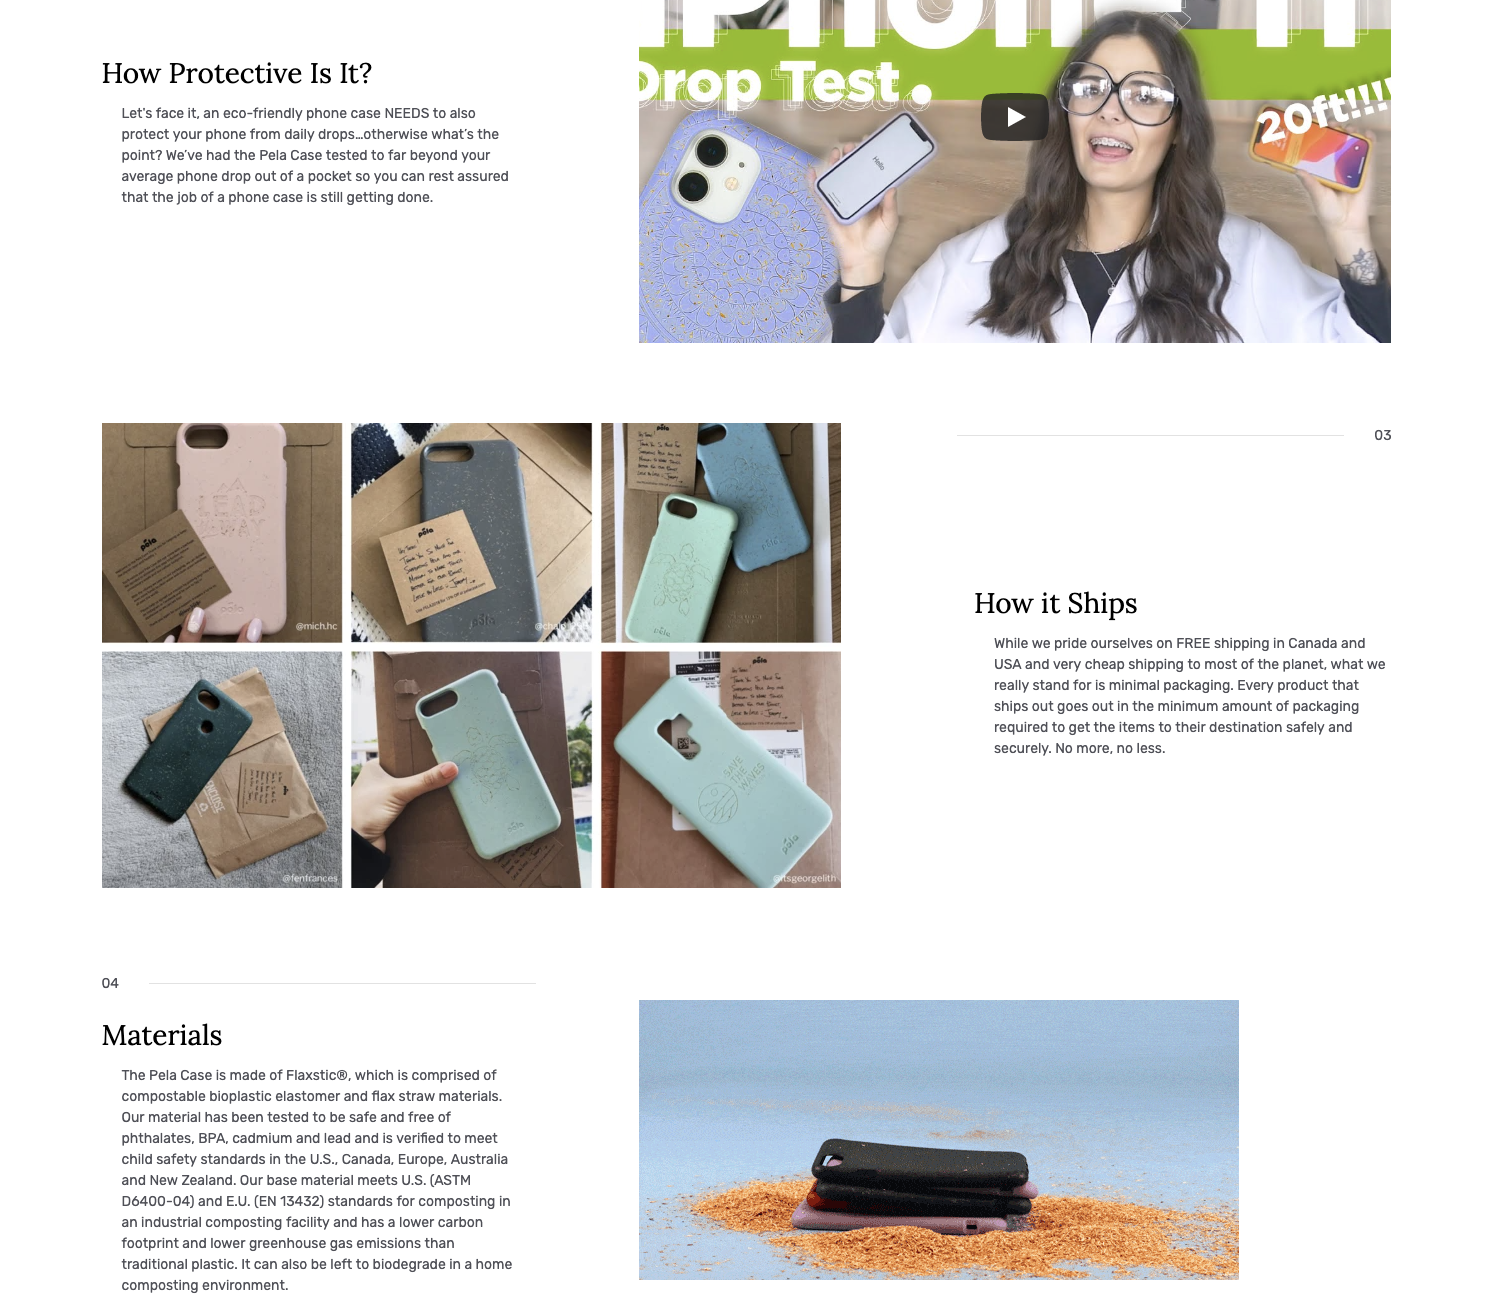 Pela's landing page style product pages